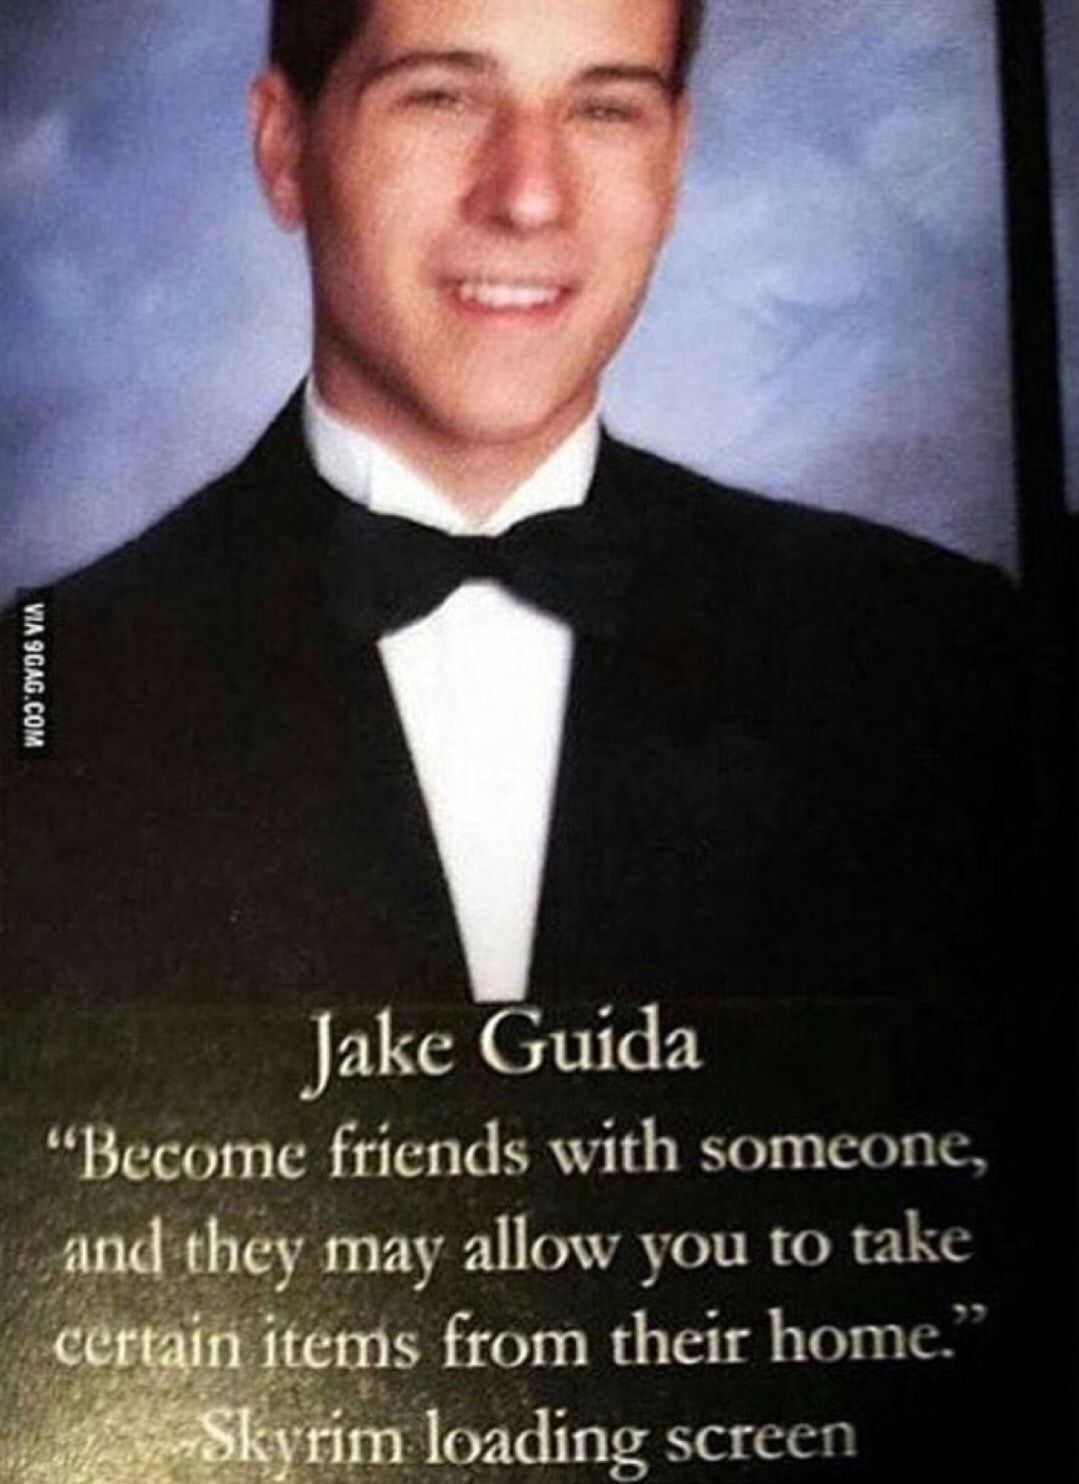 Pin By Edgy Grandpa On Video Games Funny Yearbook Quotes Funny Yearbook Yearbook Quotes